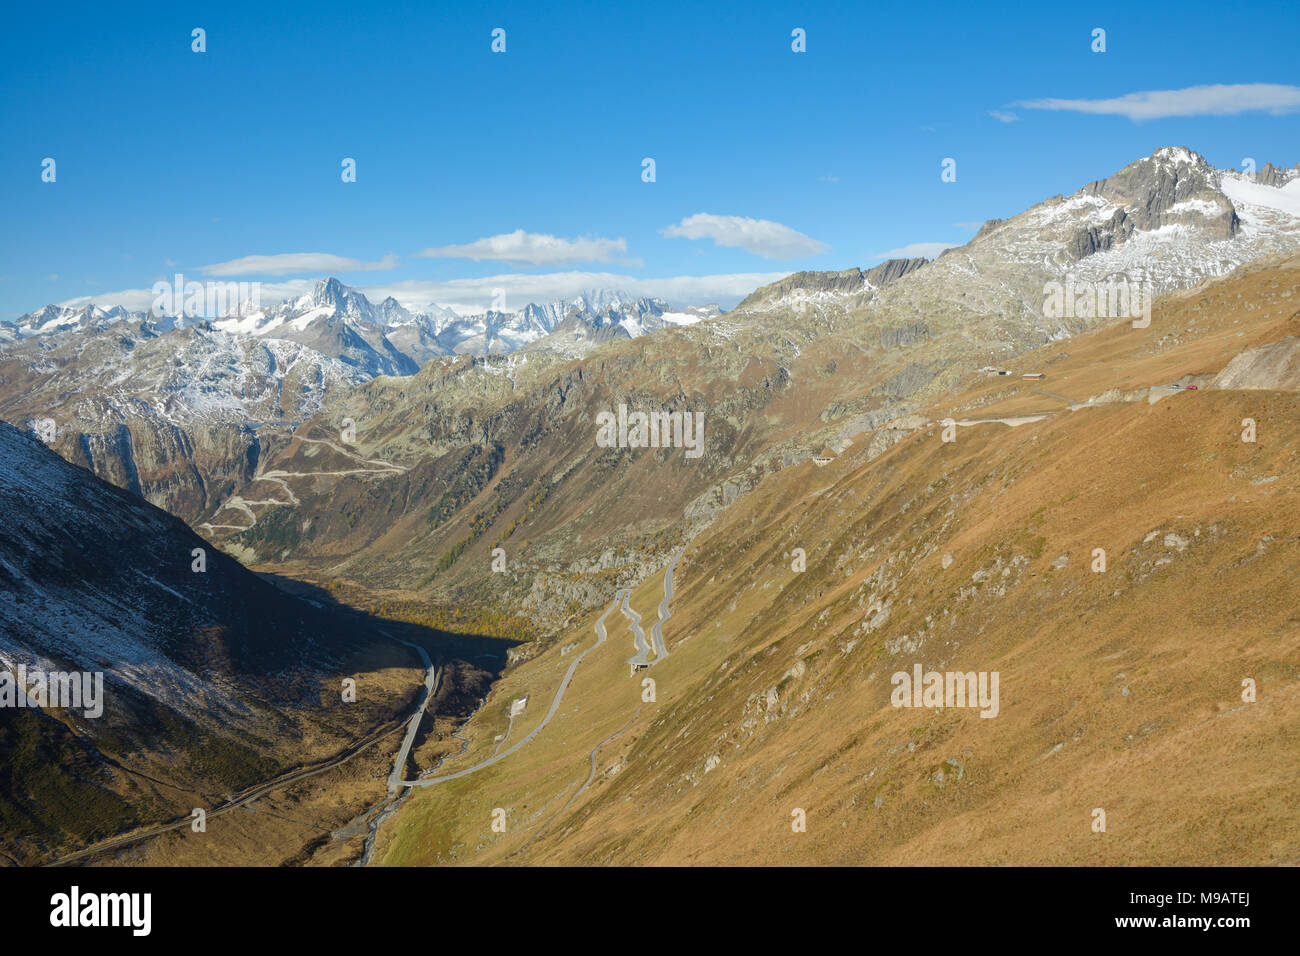 View from Furka pass on Grimsel pass and Swiss Alps Stock Photo